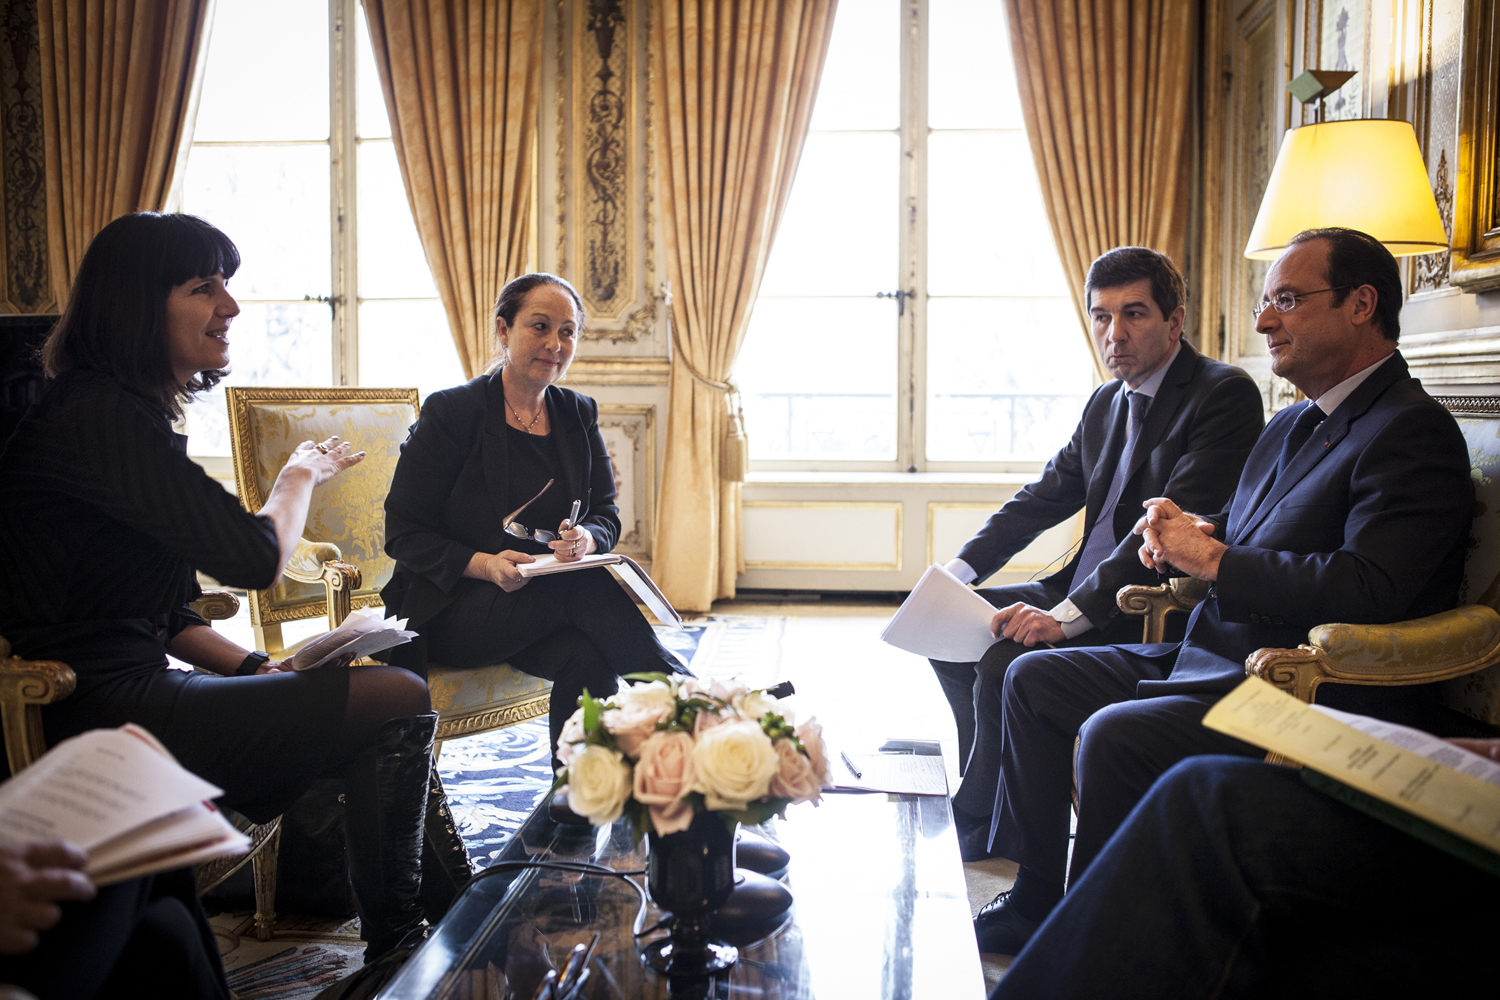 TIME's Catherine Mayer, left, and Vivienne Walt talk to François Hollande in the Élysée Palace, Paris.